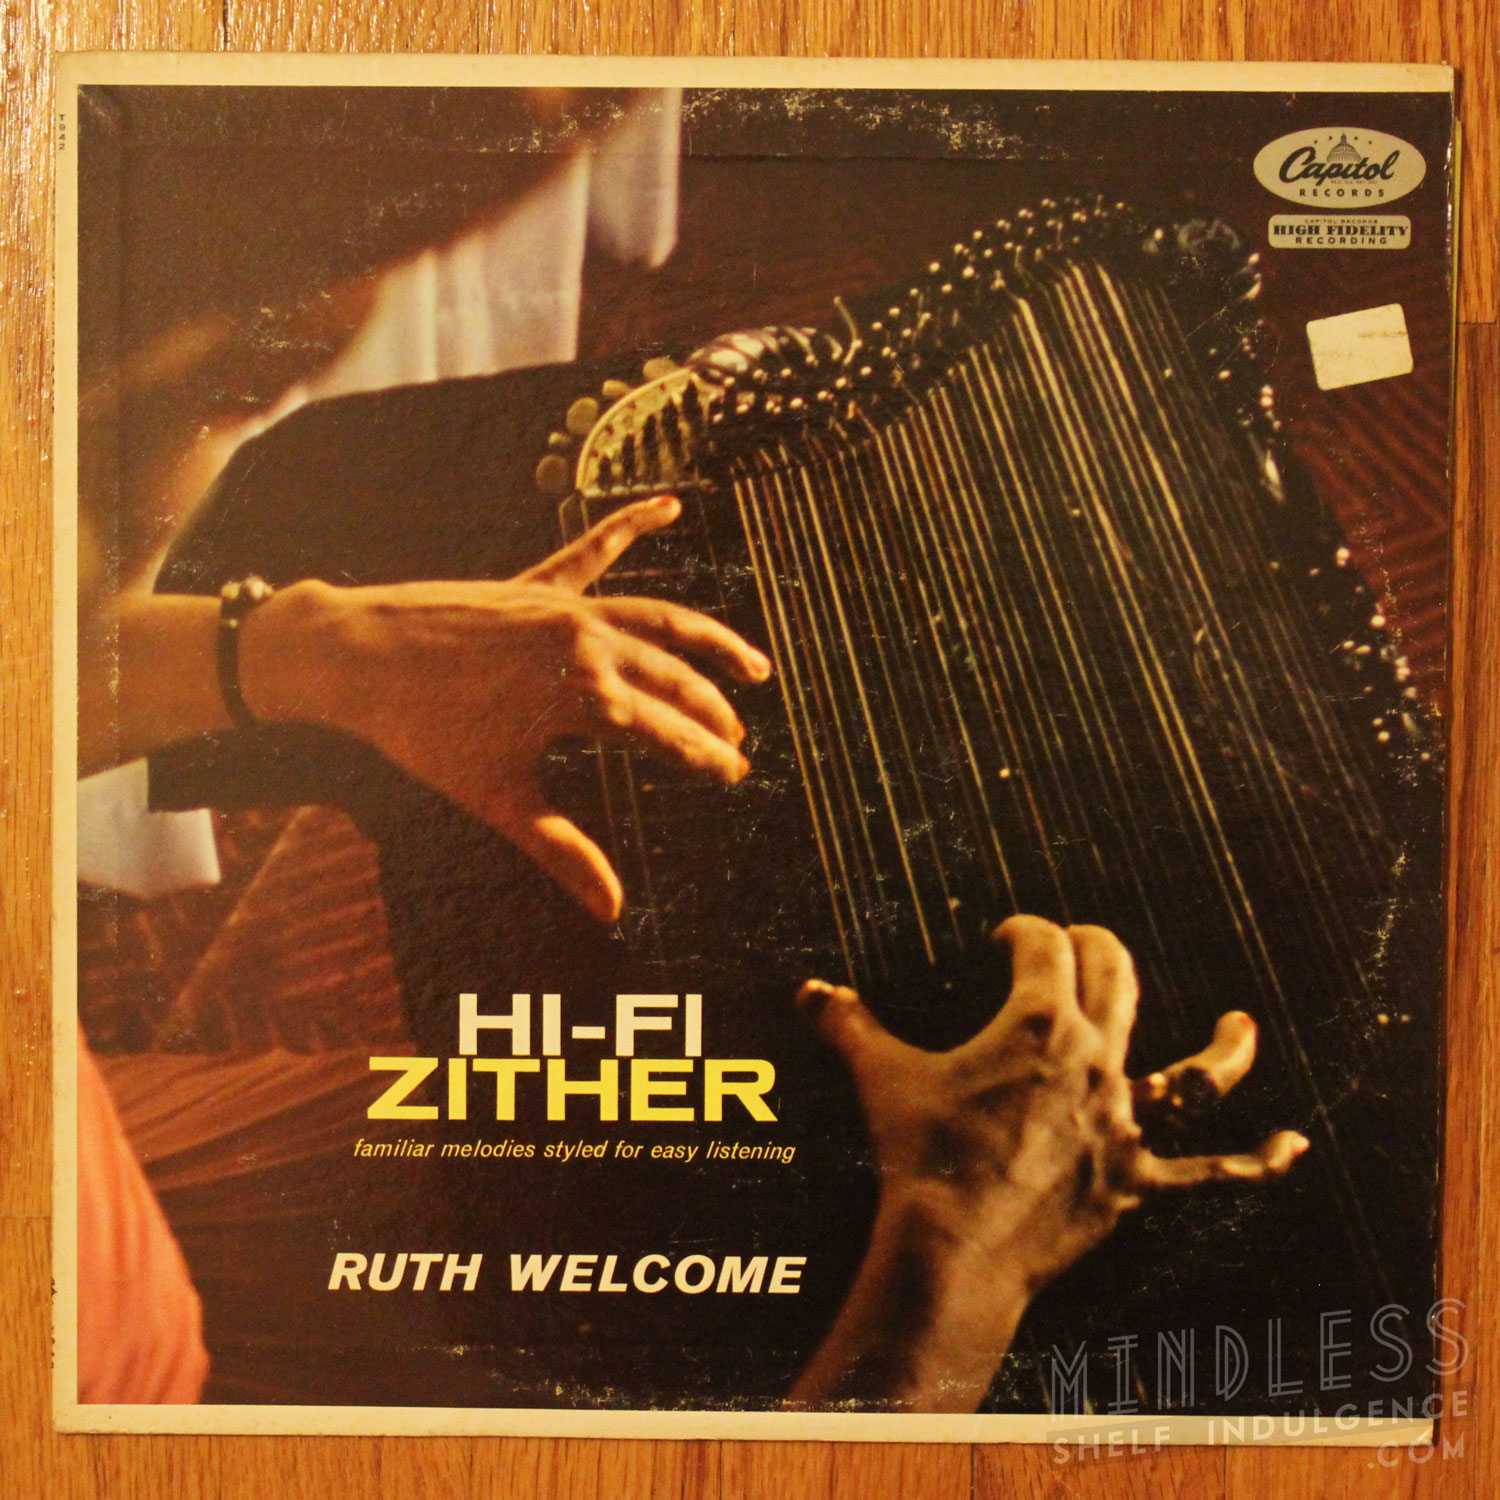 Hi Fi Zither Ruth Welcome LP